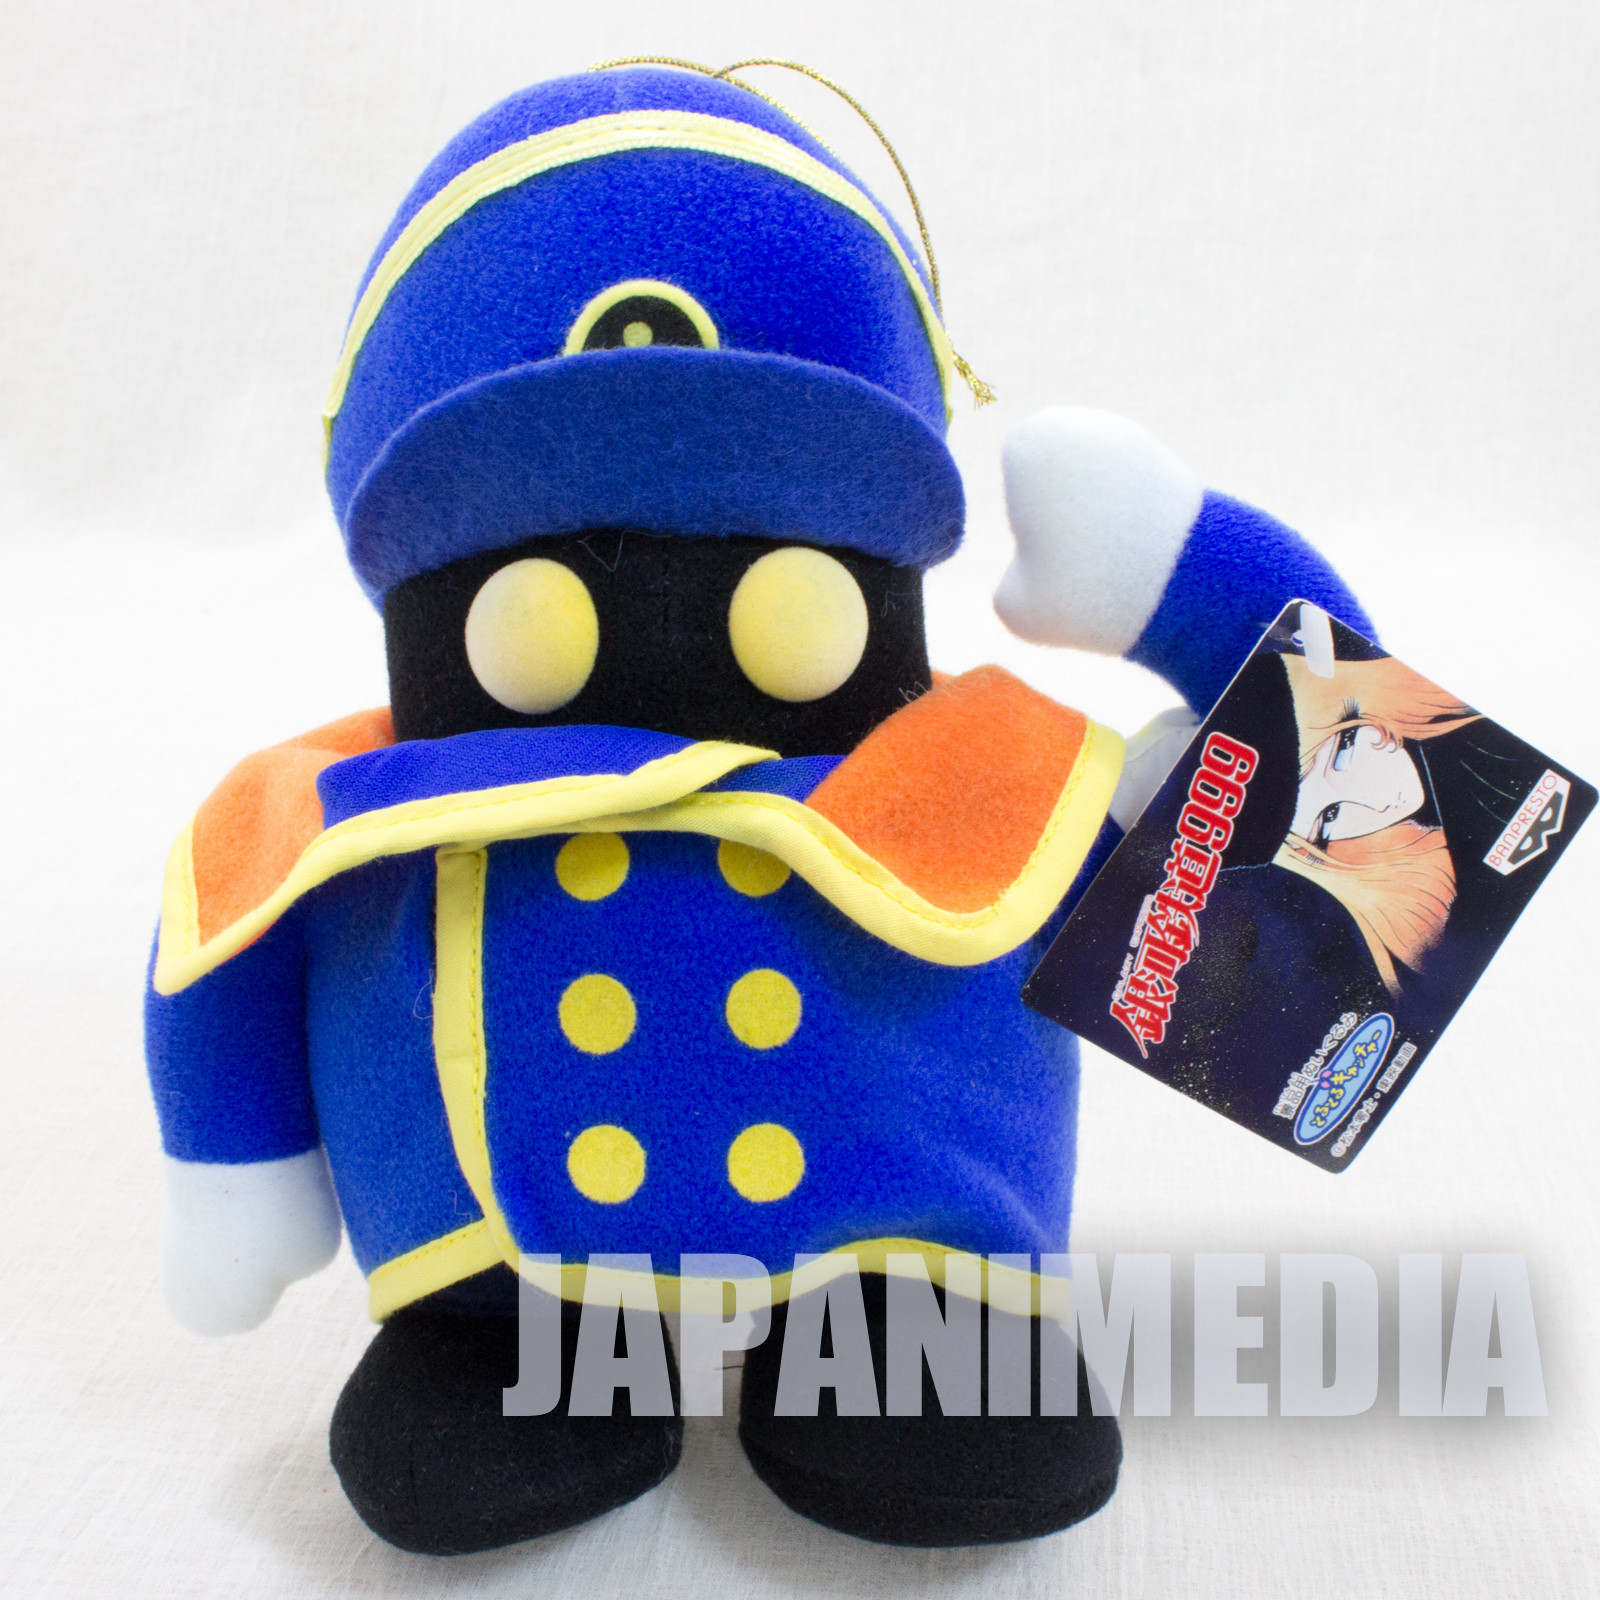 RARE! Galaxy Express 999 Conductor Plush Doll Figure Banpresto JAPAN